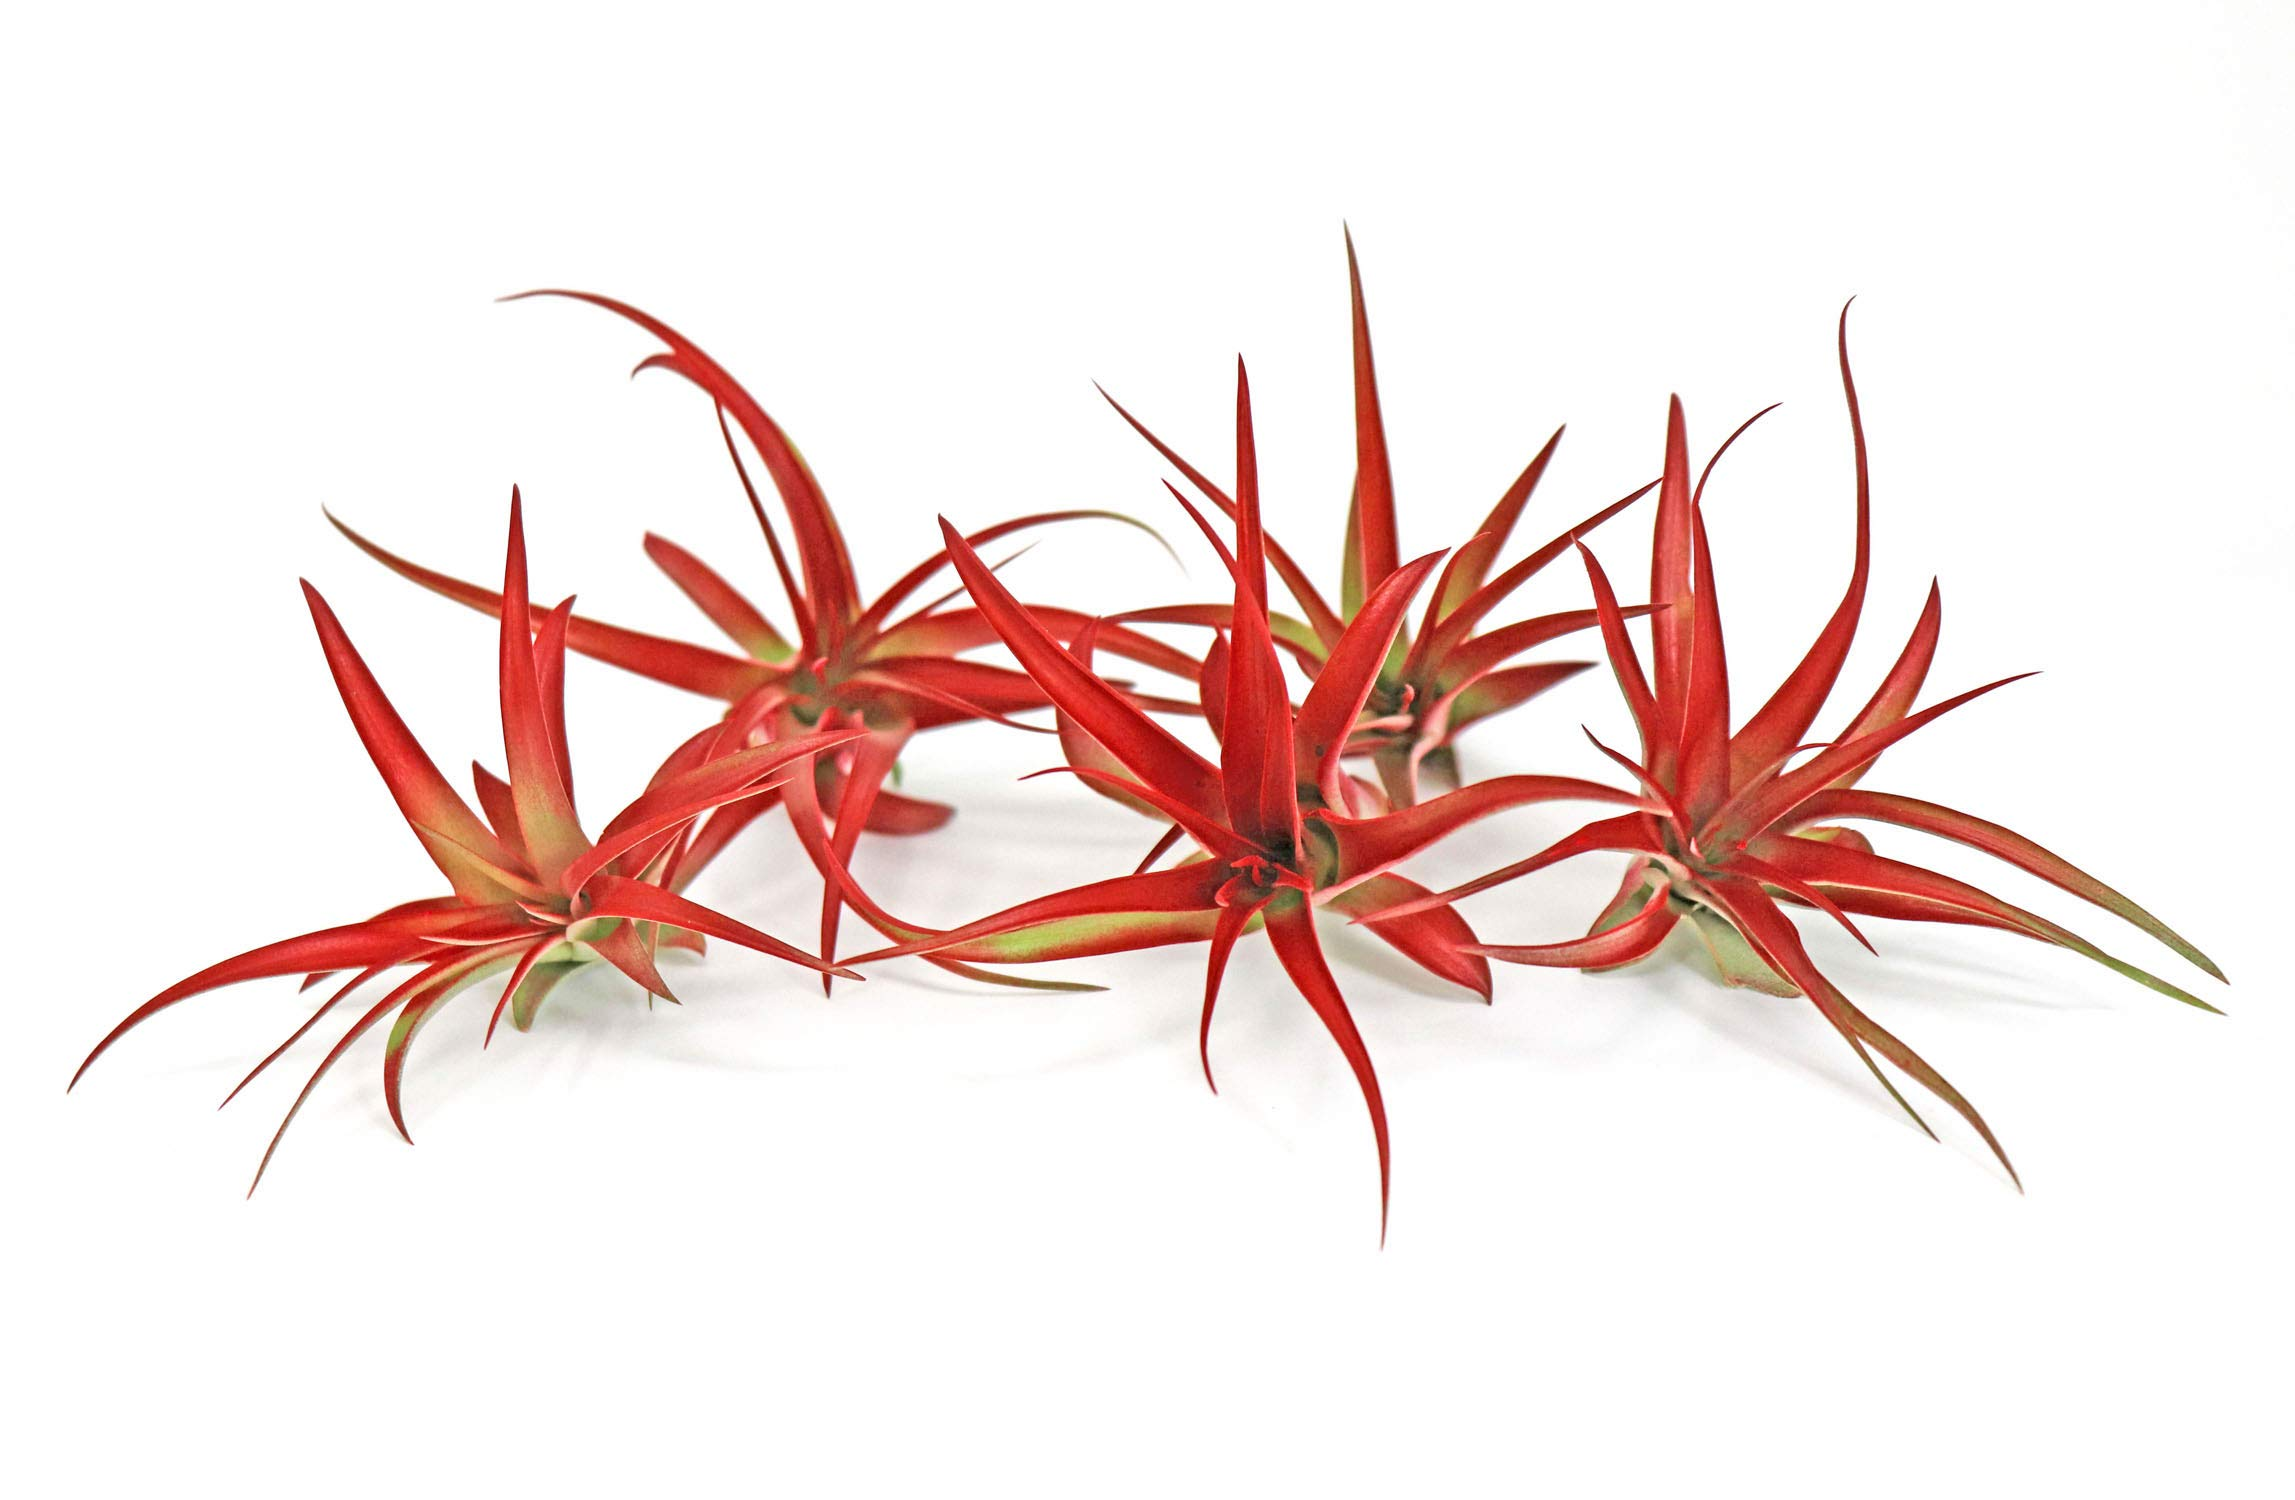 5 Live Air Plants | Bright Red Tillandsia Air Plant Pack | Colorful Indoor Plants | Real Houseplants | Easy Terrarium Decor Kit by Plants for Pets by Plants for Pets (Image #1)